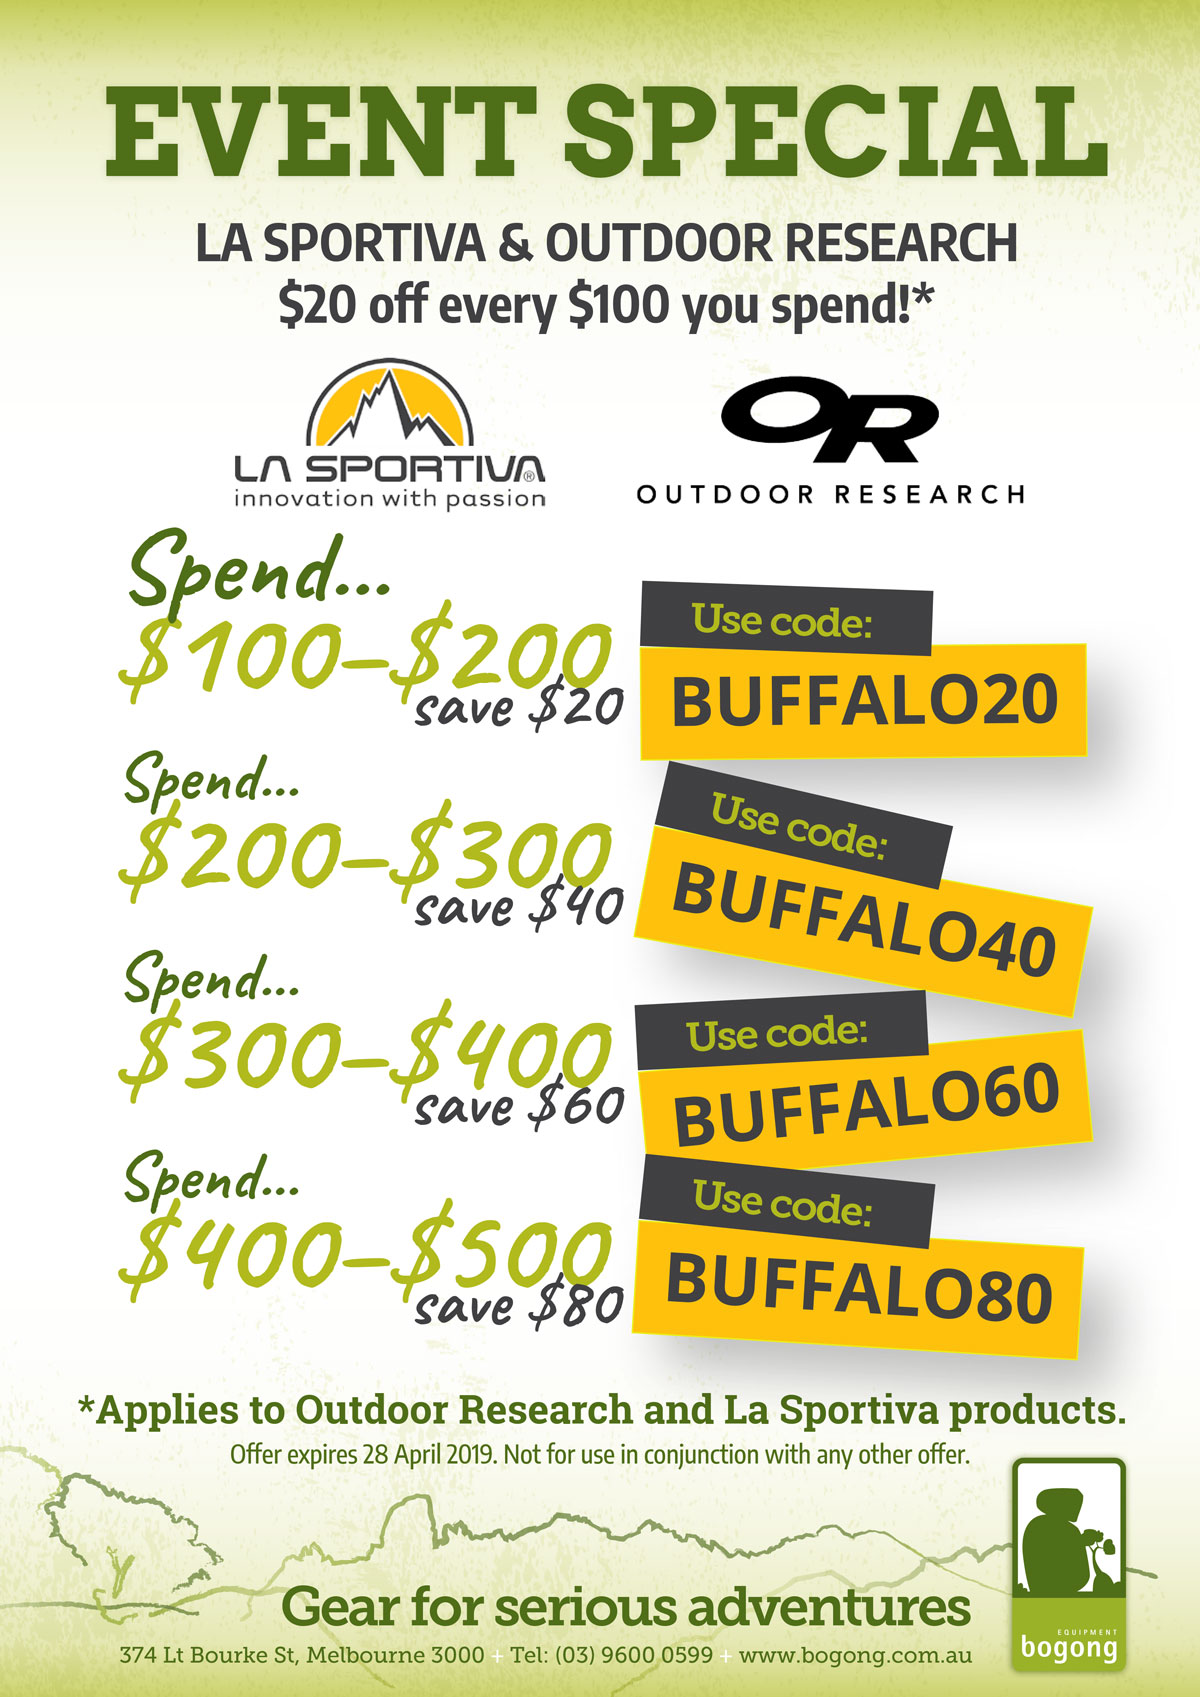 Special Offer on La Sportiva and Outdoor Research: $20 off every $100 you spend